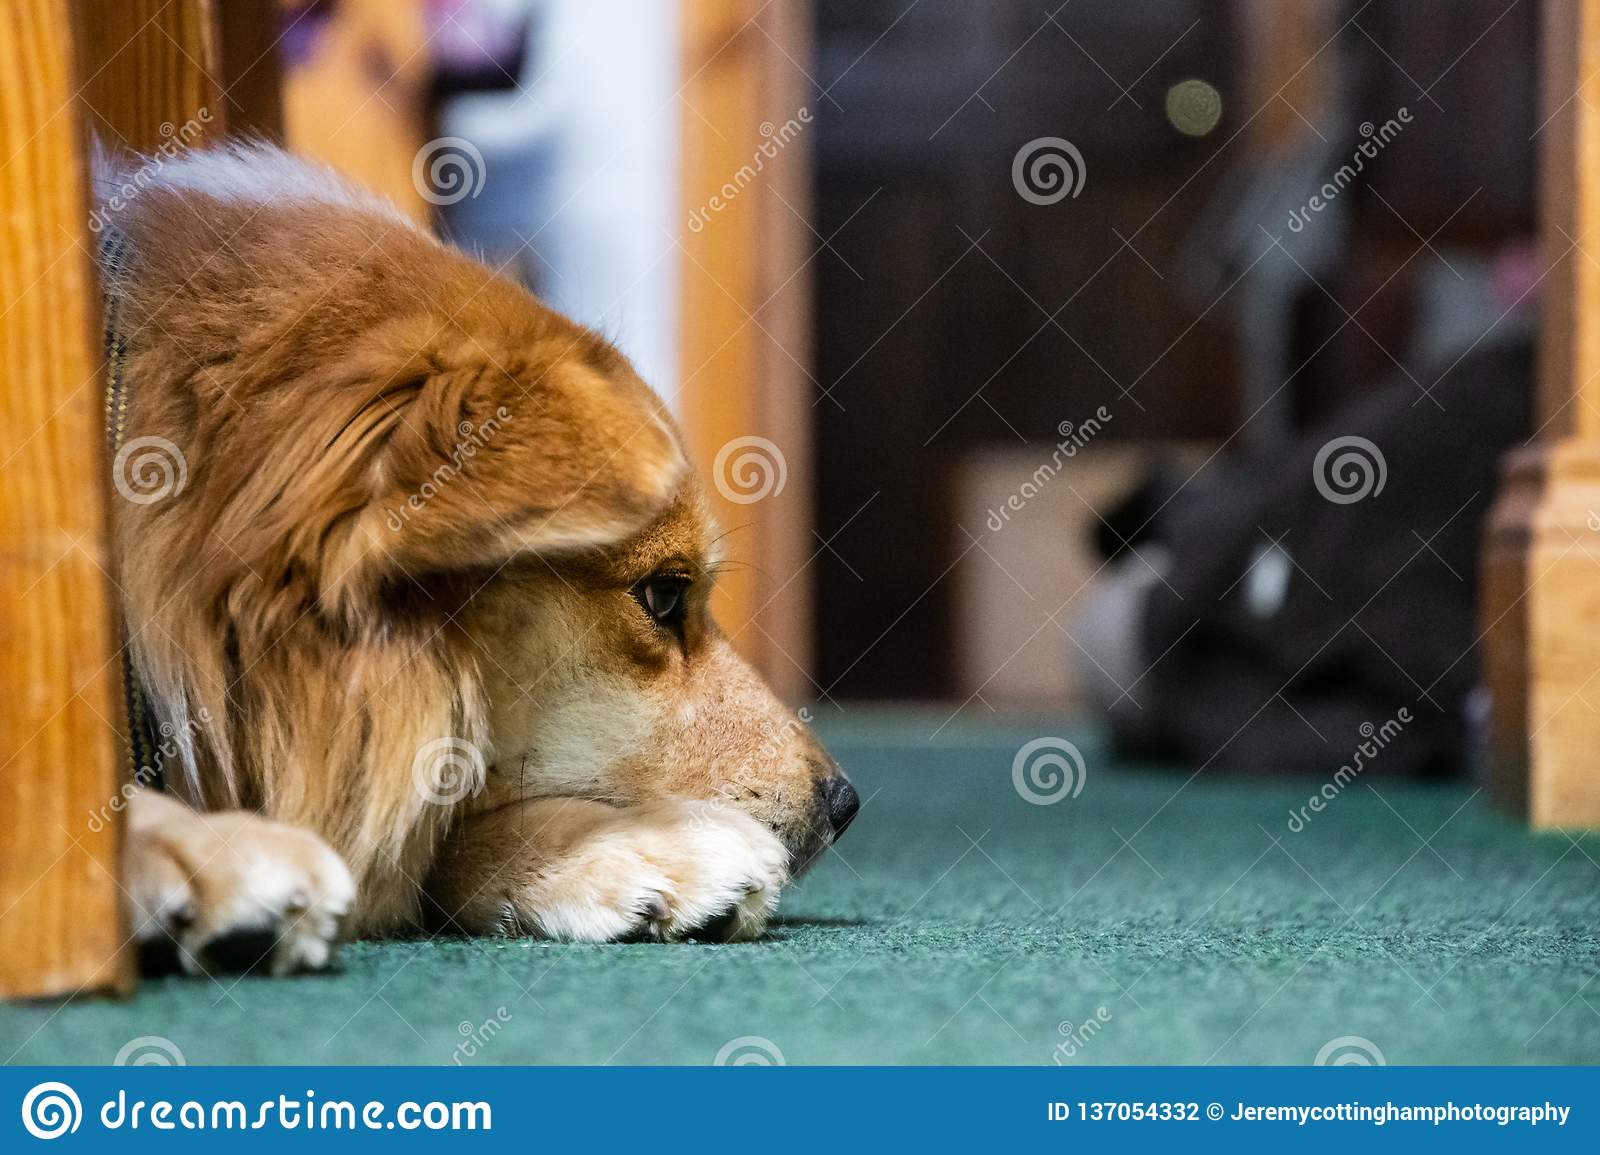 A cute dog lying down with head on paws. Golden brown throwback Pomeranian dog.